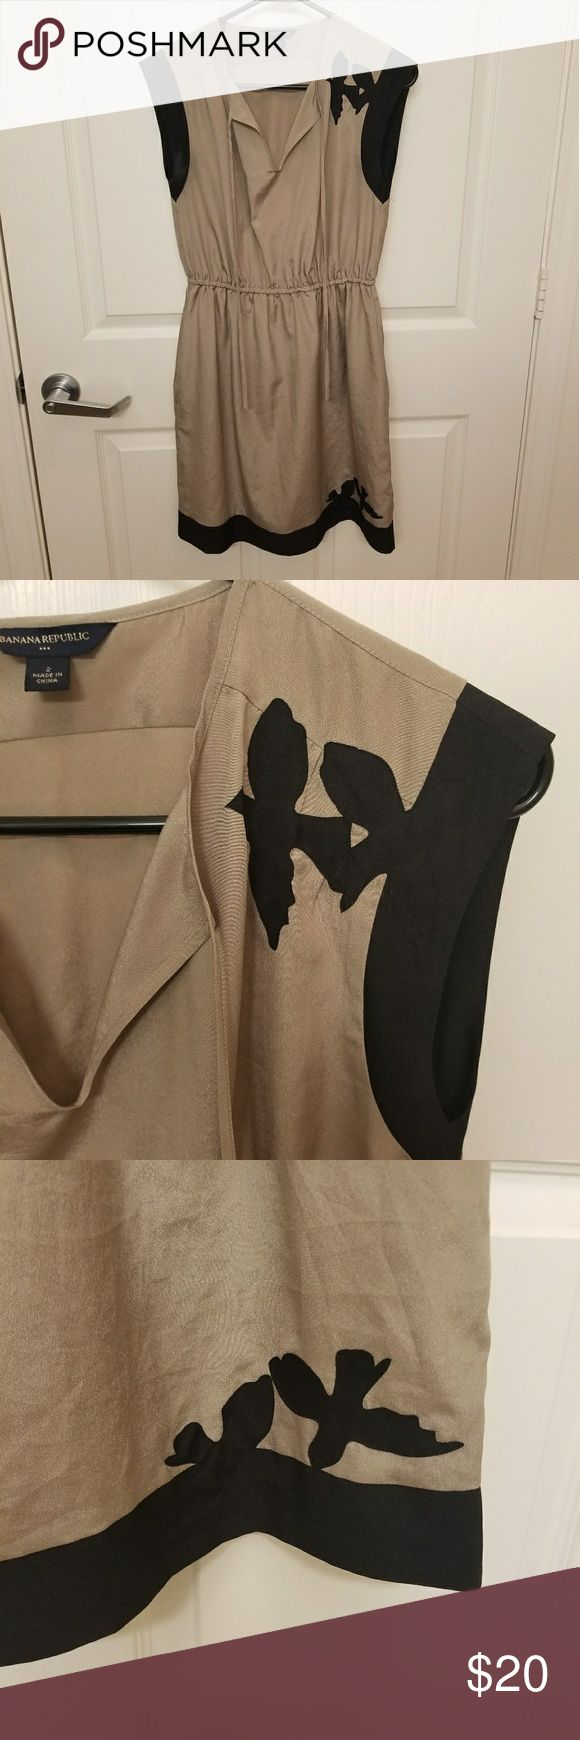 Banana Republic dress with bird detail Taupe and black banana republic dress with bird detail on shoulder and hemline. Cinged waist is elastic. Very light and comfy. Looks great with leggings and boots! Banana Republic Dresses Midi